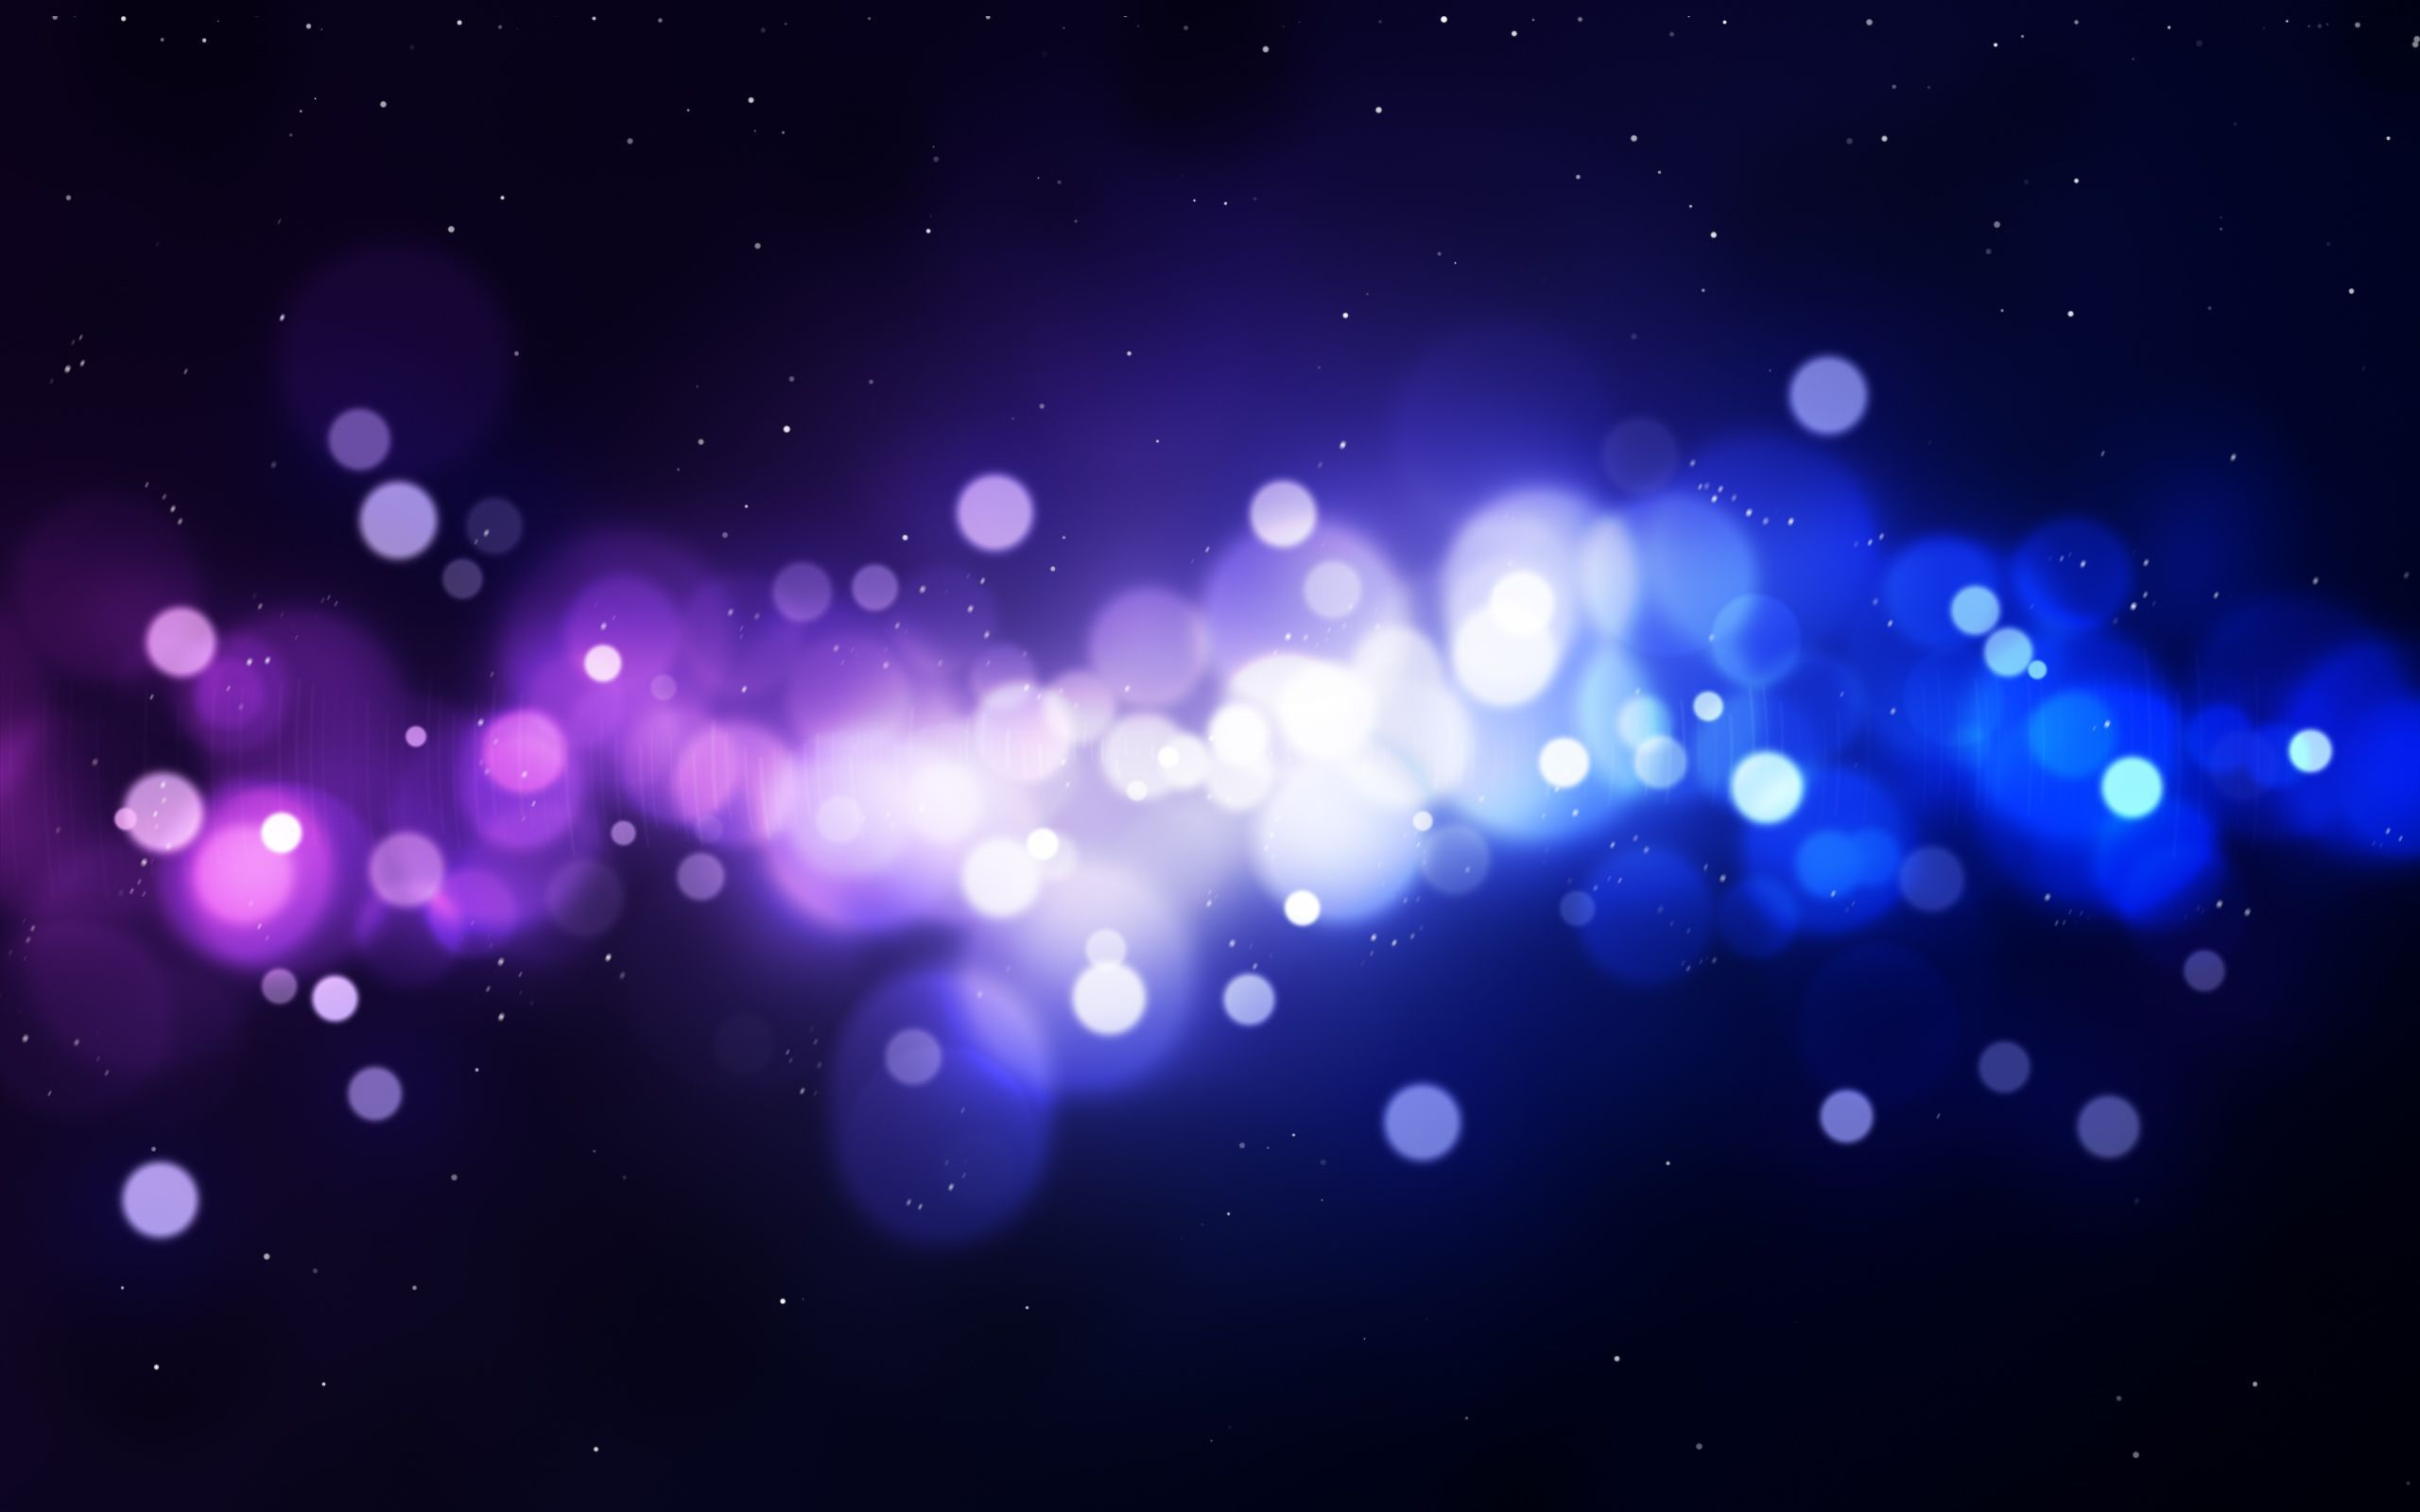 Blurry light circles wallpaper